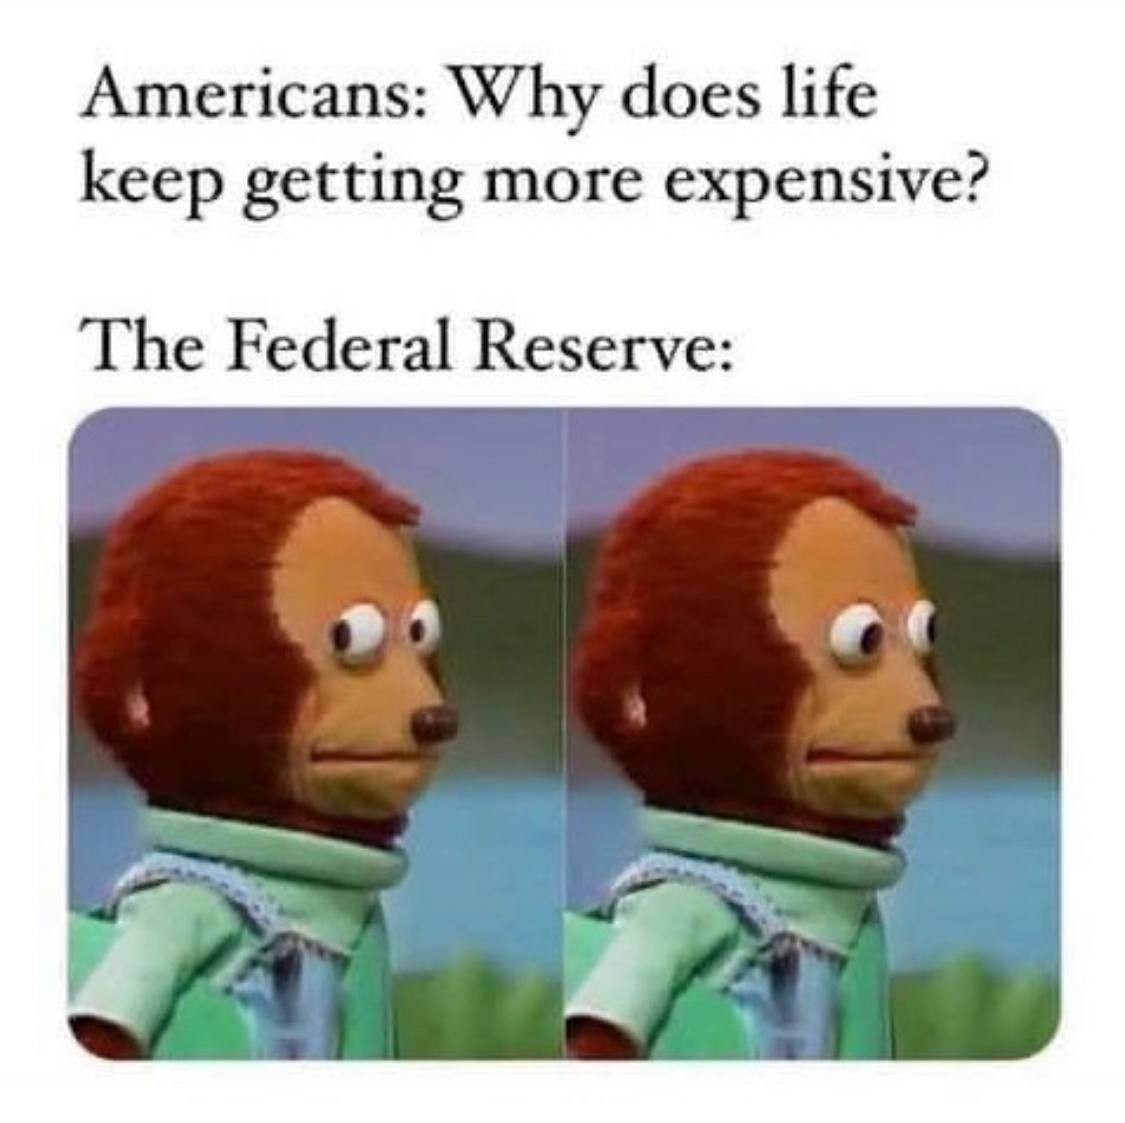 The Federal Reserve issues FAKE MONEY! - meme